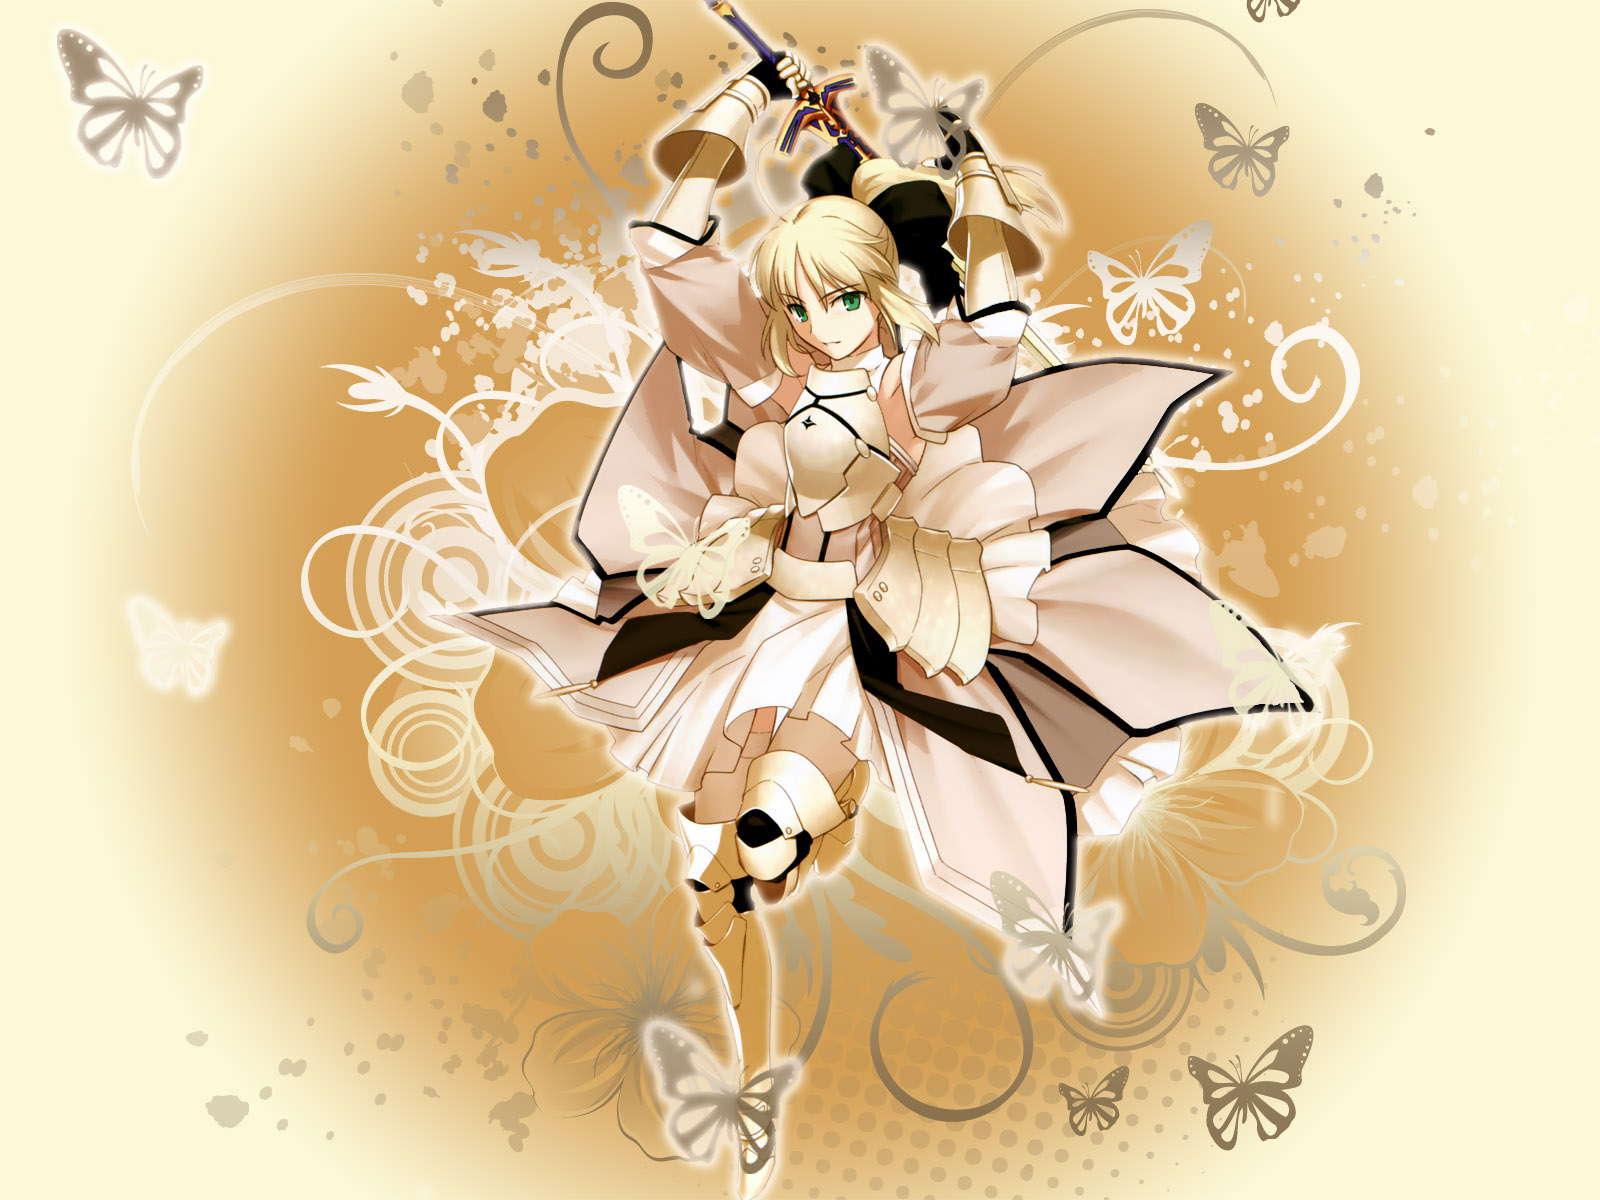 fate/stay_night fate/unlimited_codes saber saber_lily